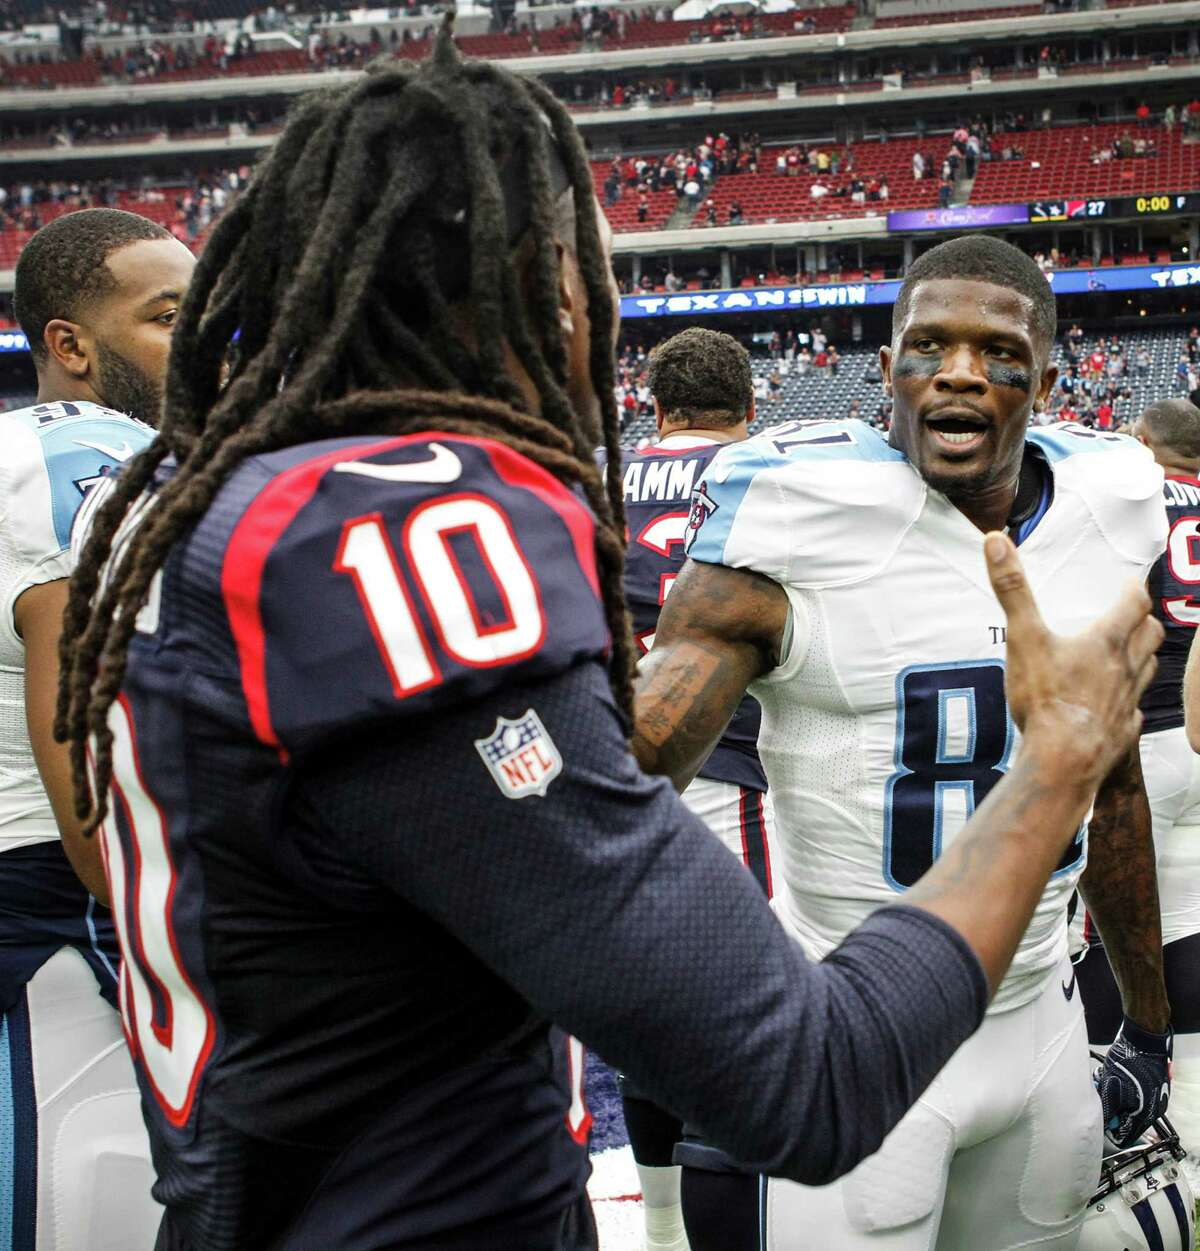 Houston Texans wide receiver DeAndre Hopkins (10) and former Texans and current Tennessee Titans wide receiver Andre Johnson (81) shake hands after the Texans 27-20 win over the Titans at NRG Stadium on Sunday, Oct. 2, 2016, in Houston.